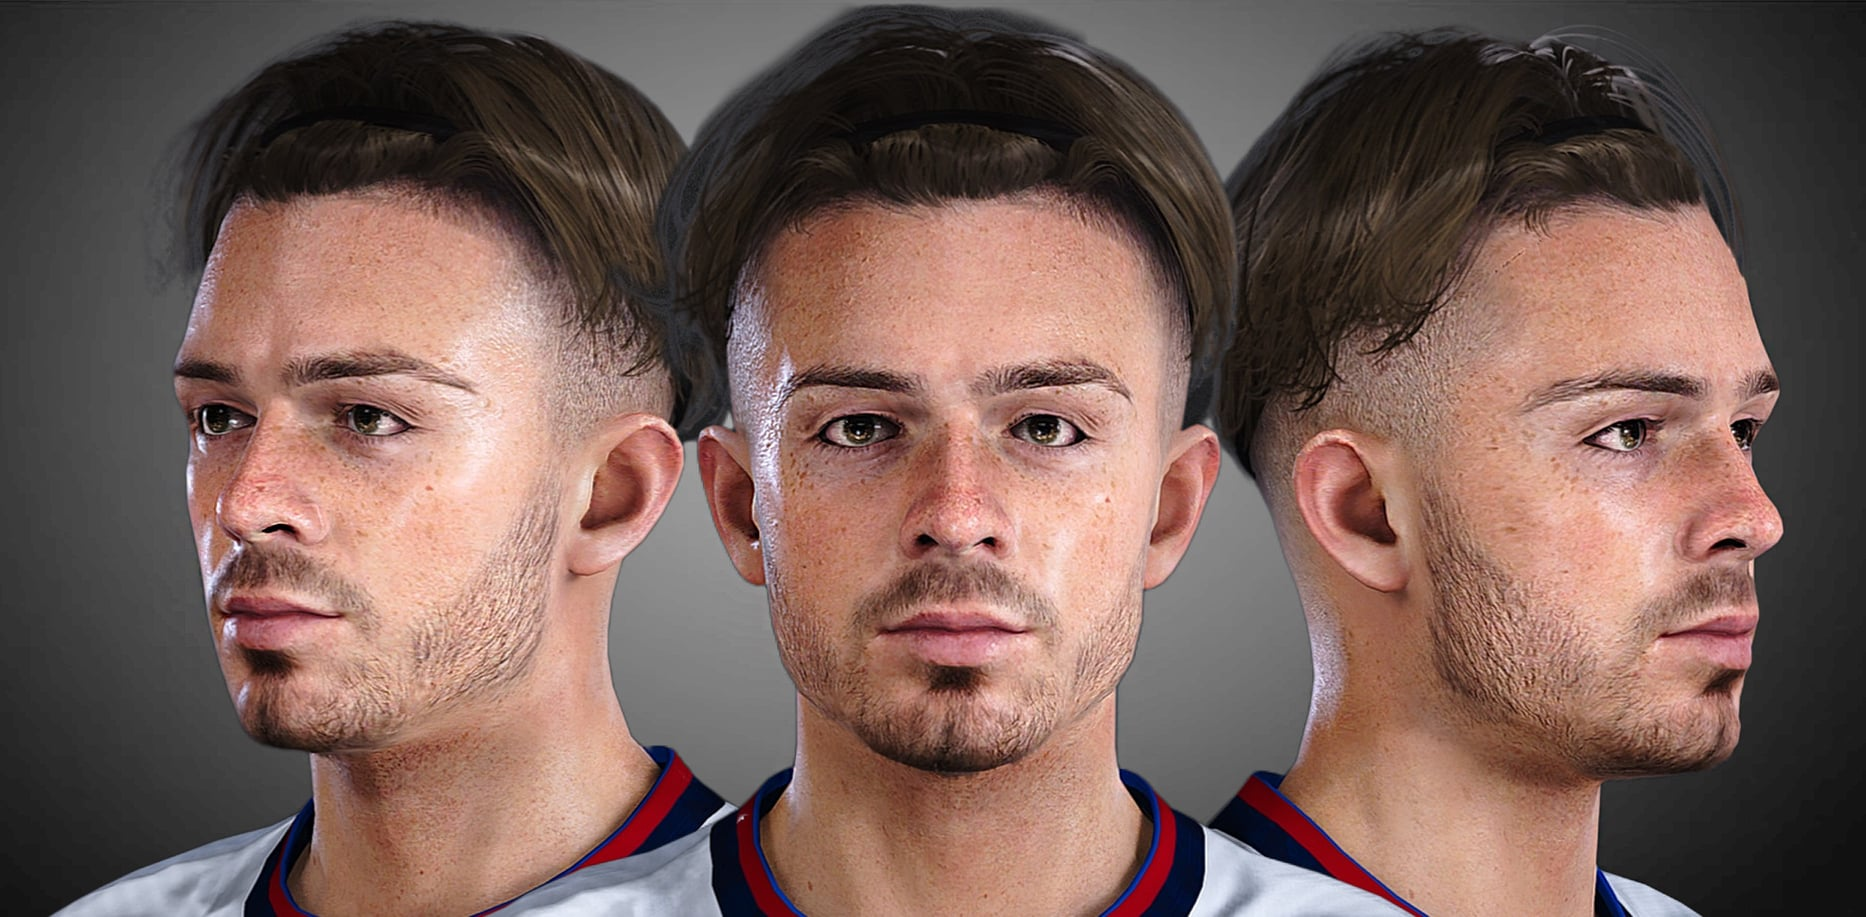 J.GREALISH by LR7_Face Convert FIFA21 for PES 2021